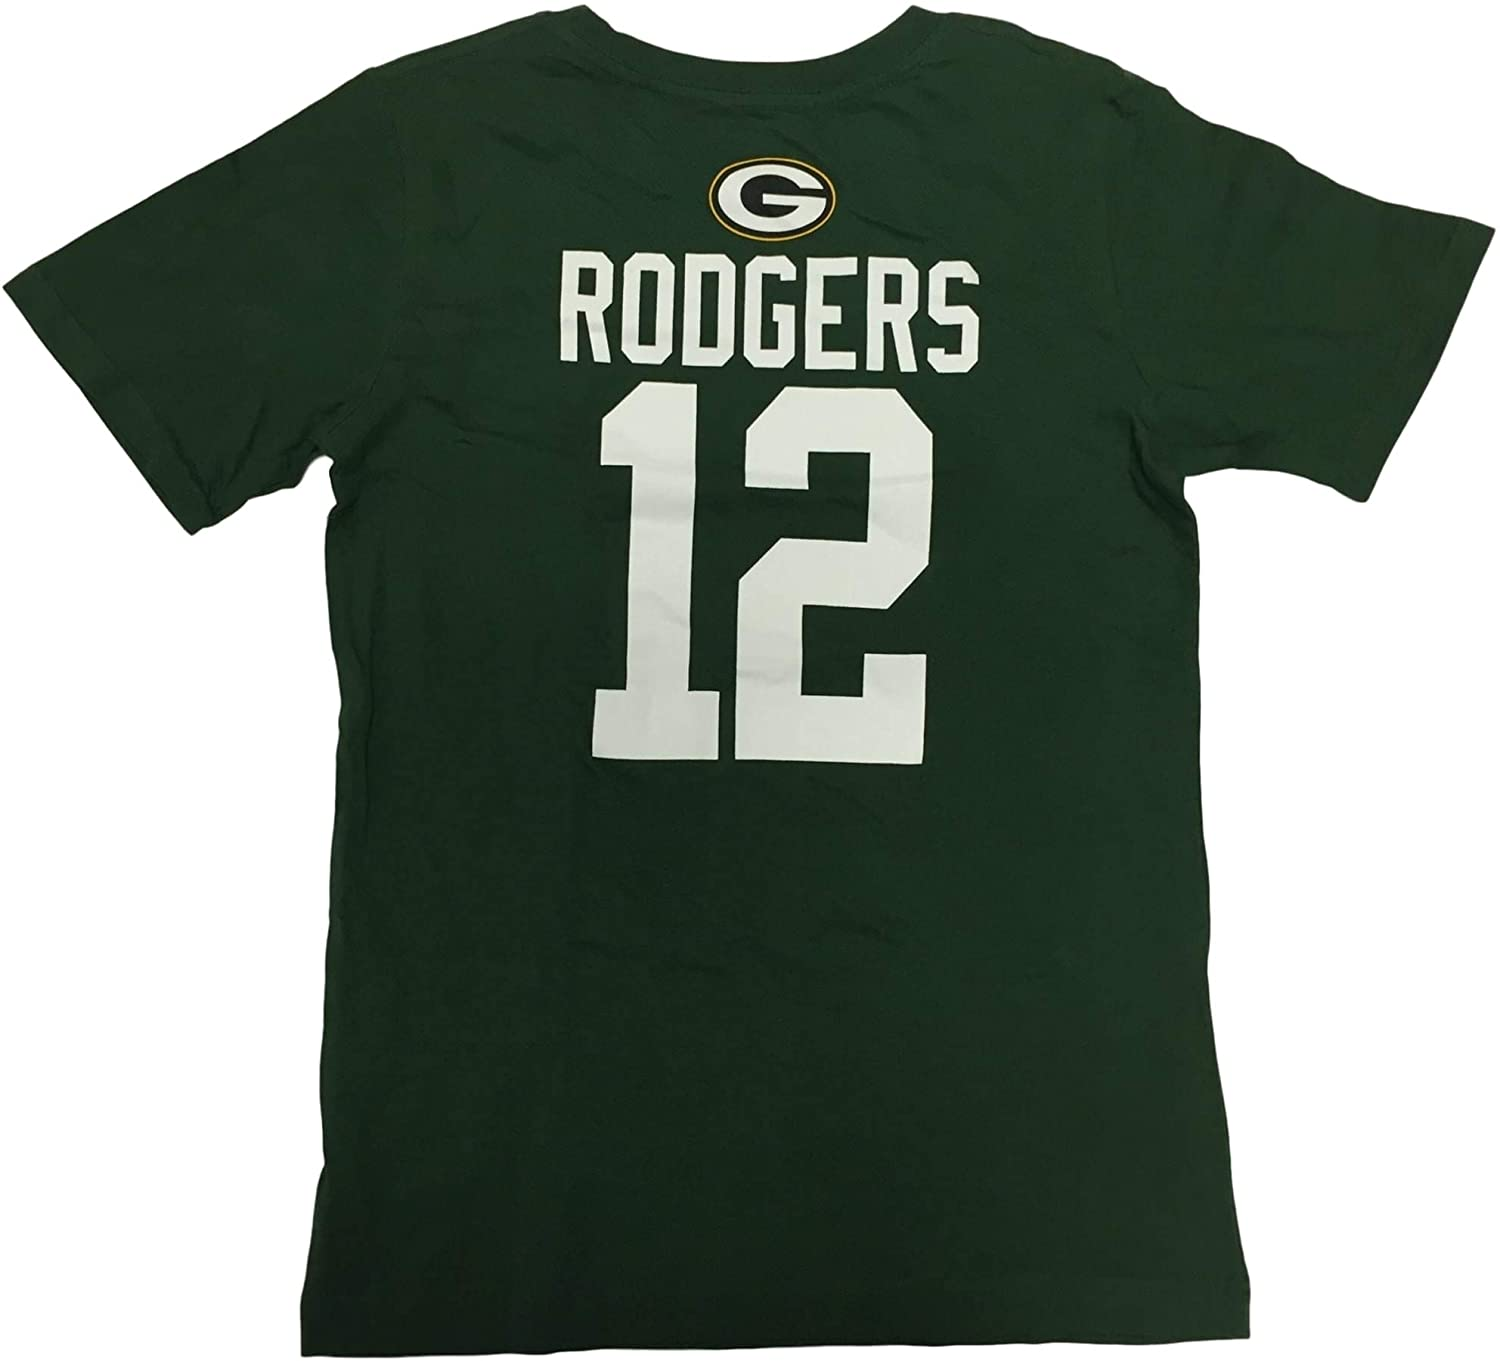 NFL Team Apparel Men's Aaron Rodgers #12 Player Name and Number Crew Neck Jersey T-Shirt